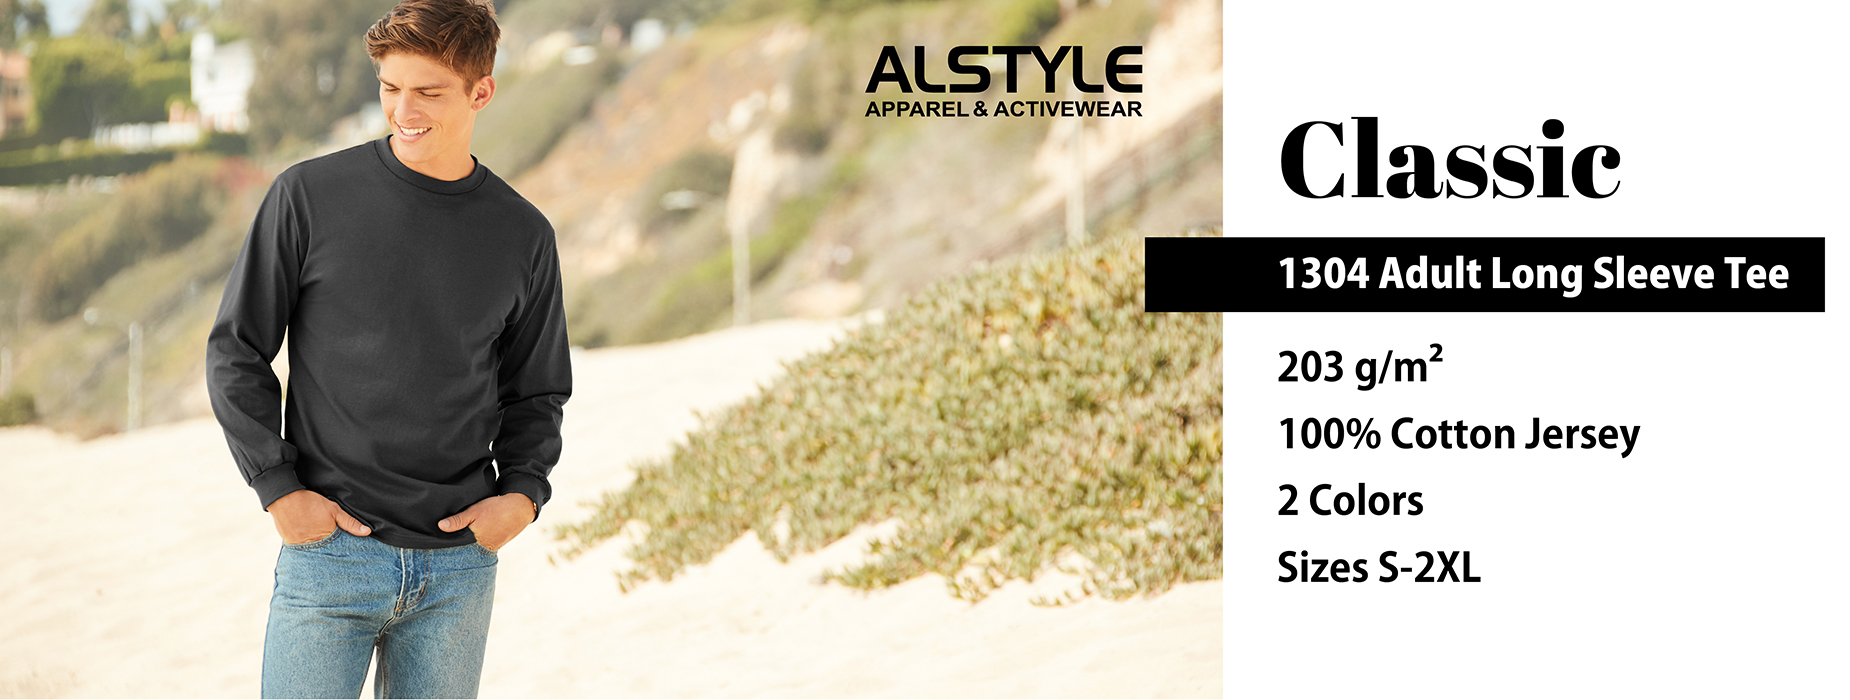 Shop our Alstyle Long Sleeve Tee 1304, Adult Long Sleeve Tee, クラシック長袖Tシャツ | Gildan® Brands Japan